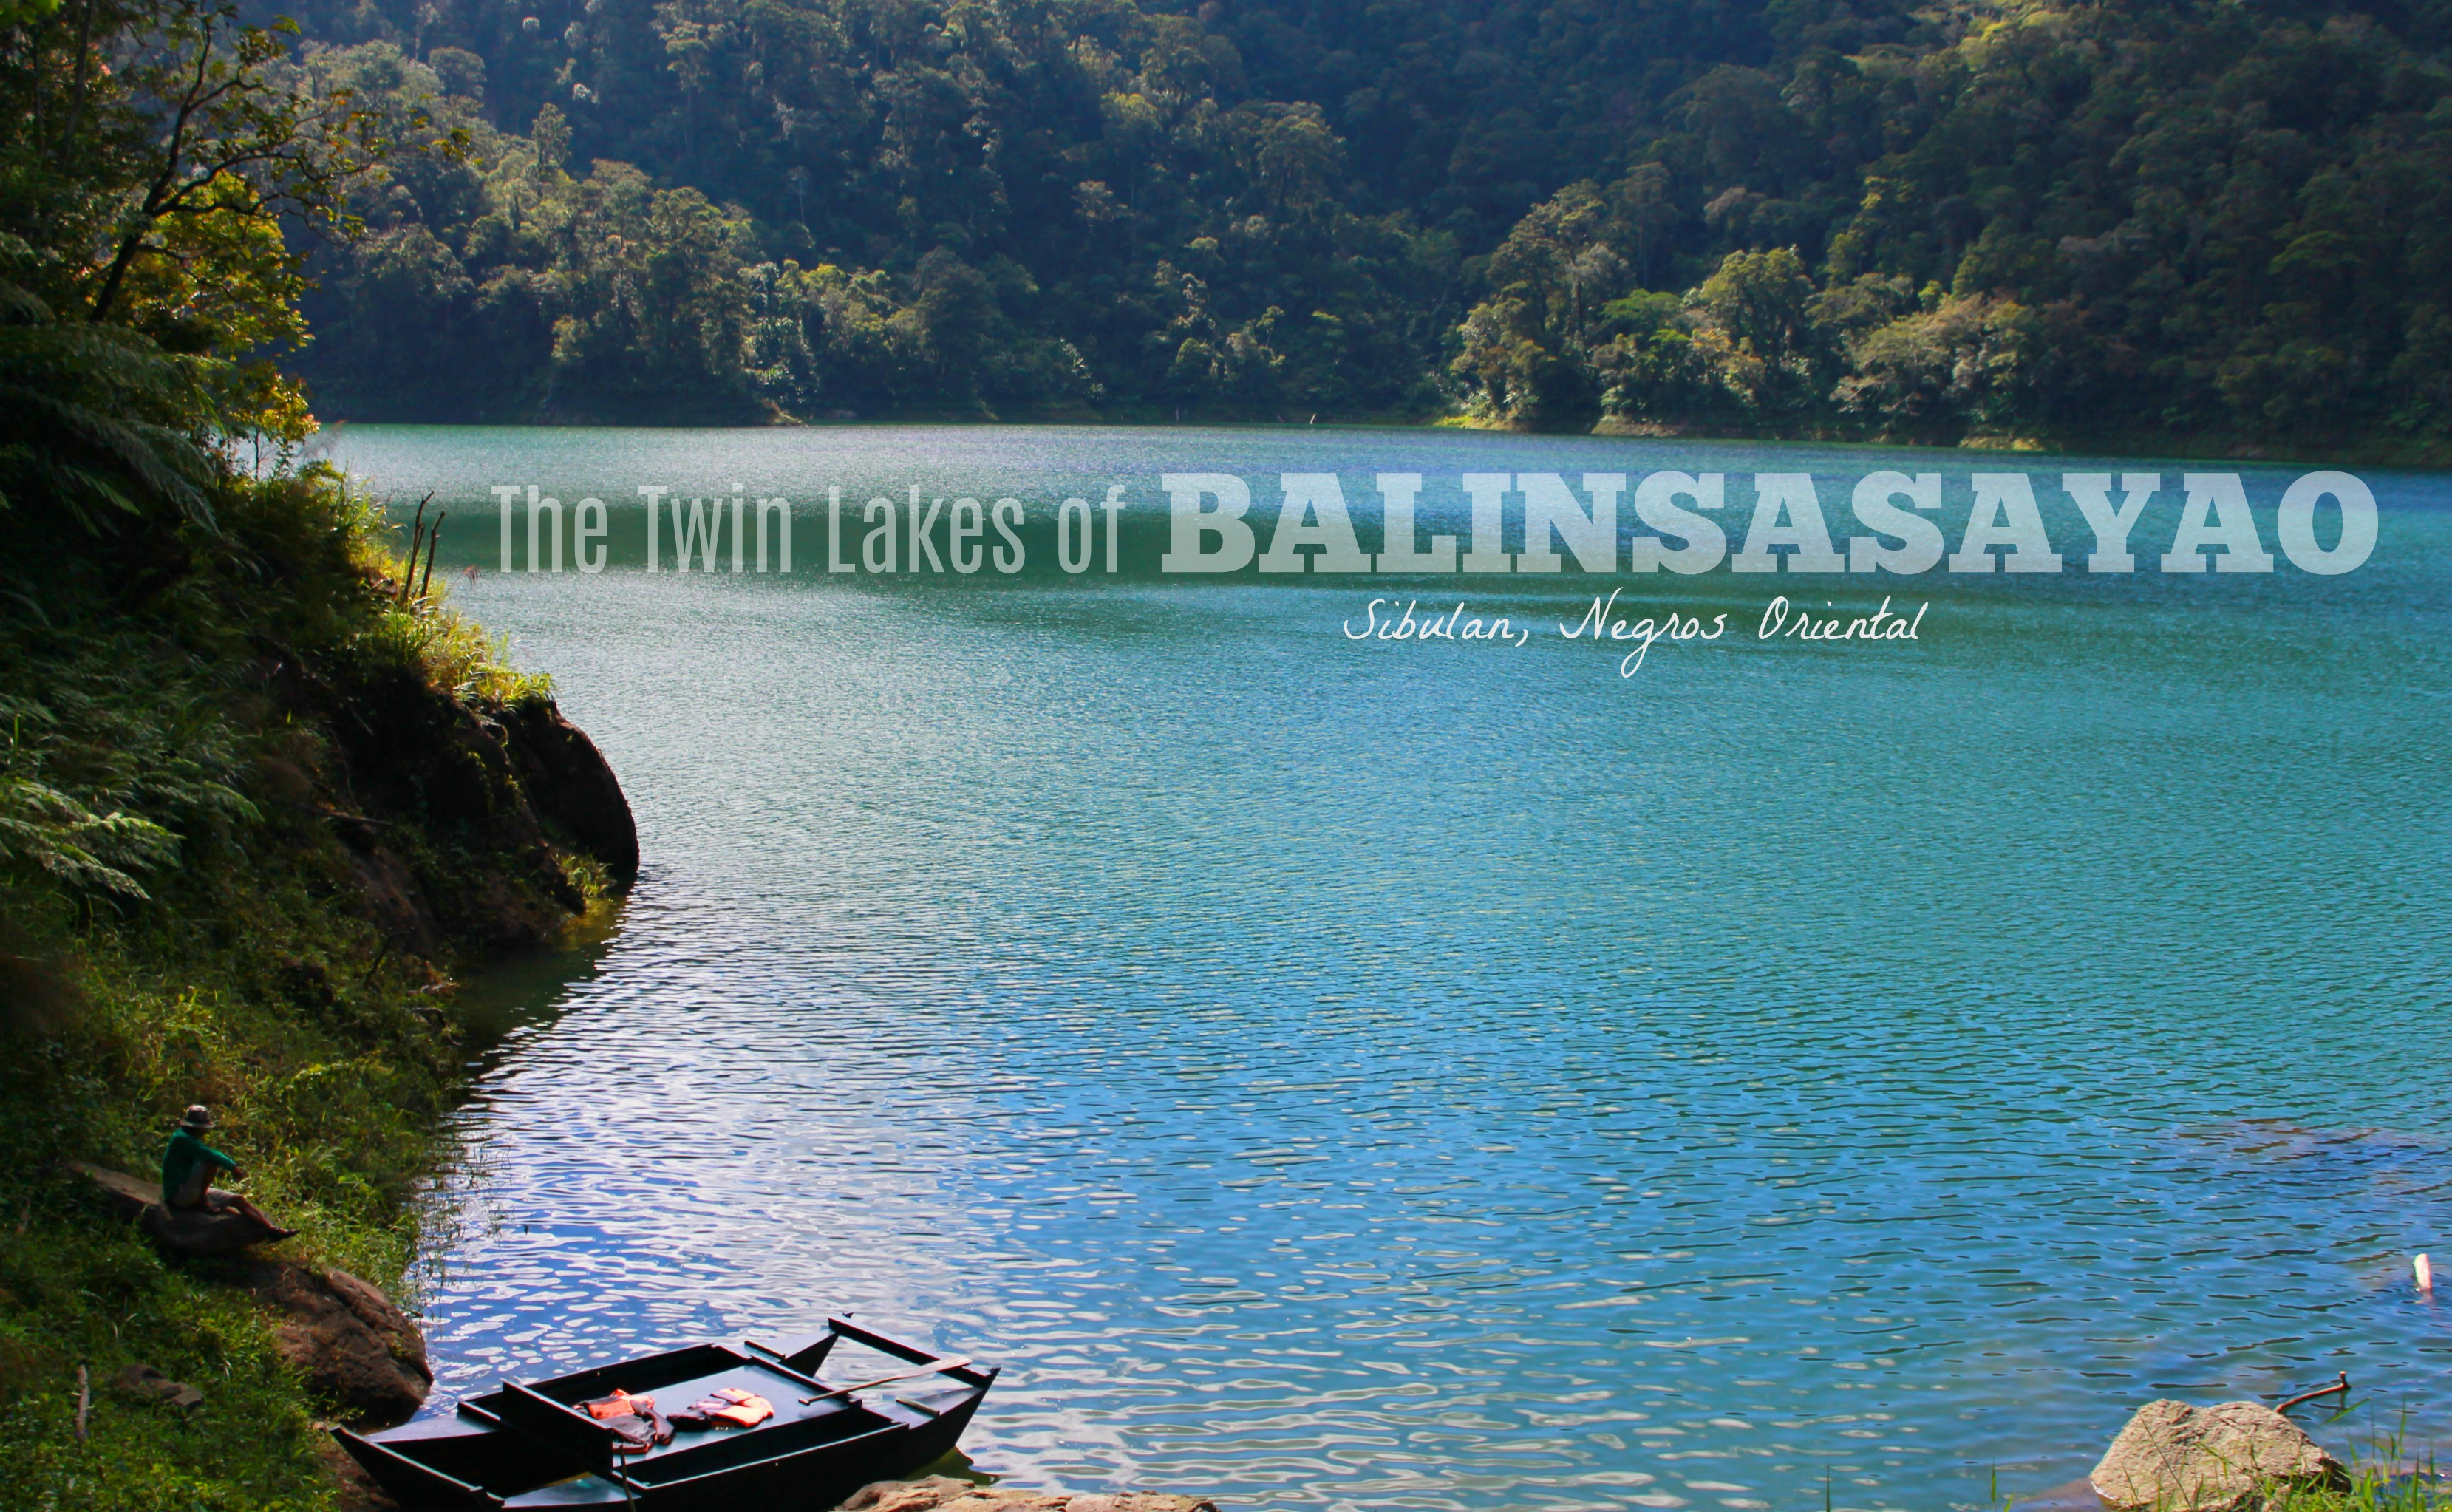 Balinsasayao Twin Lakes of Sibulan